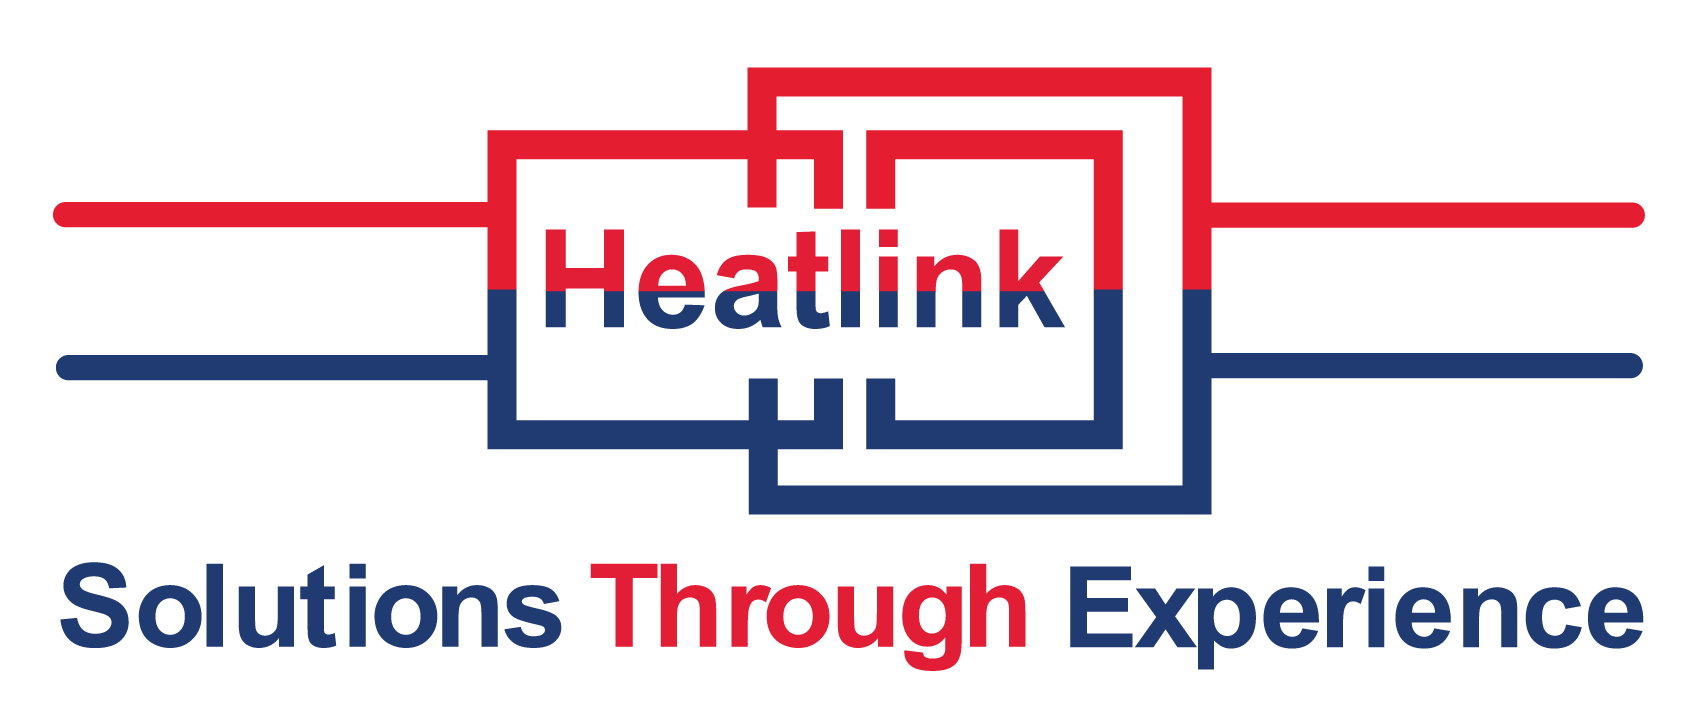 HEATLINK LOGO - New Festival Quarter London